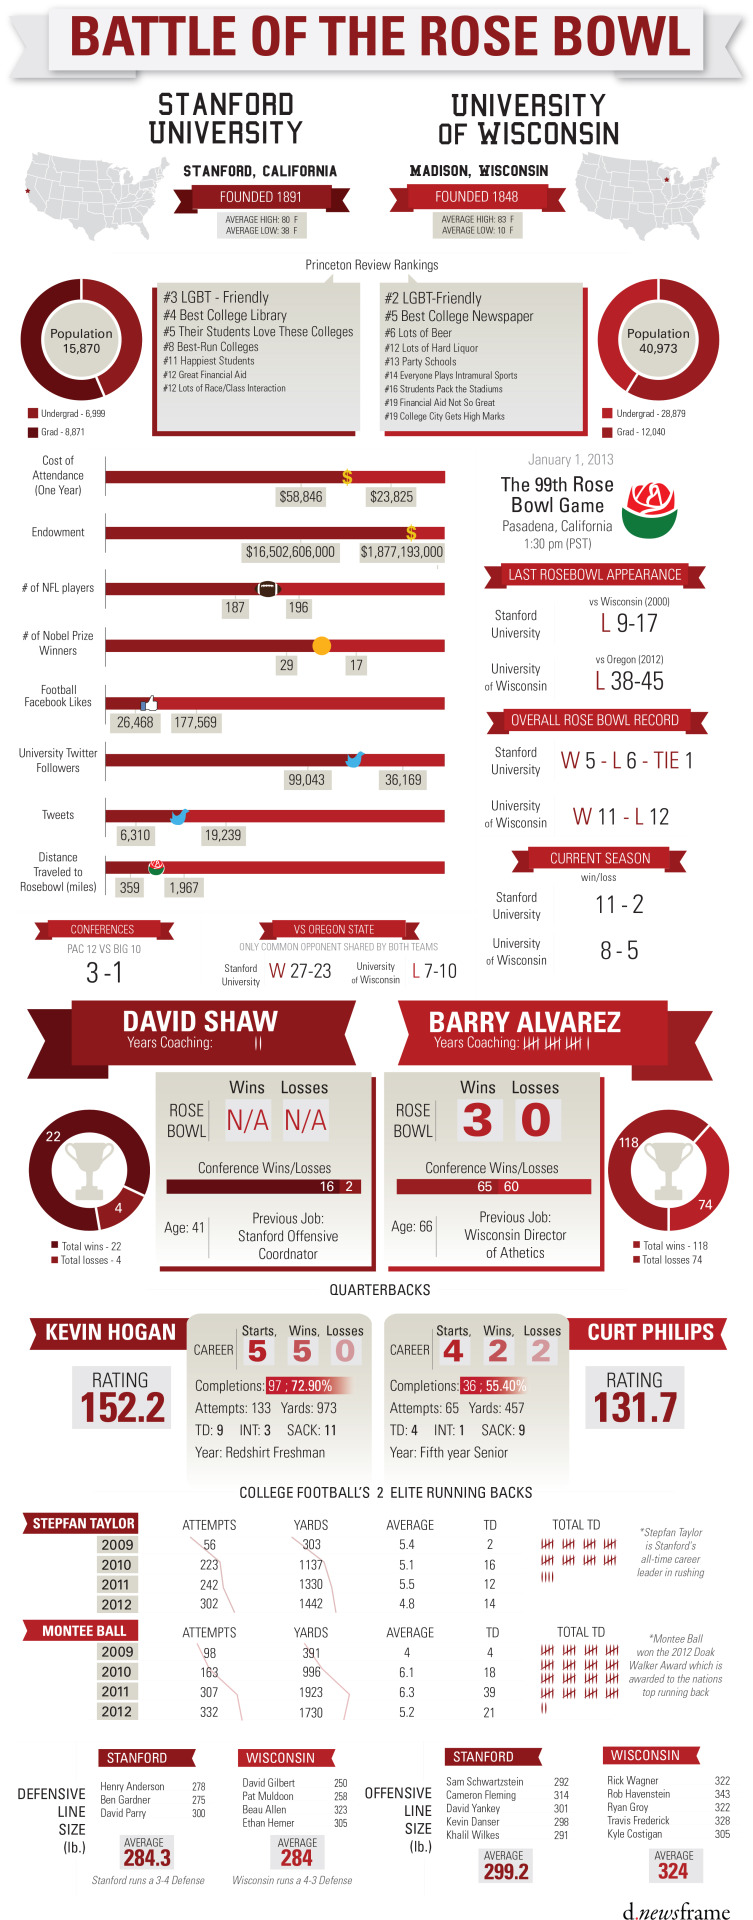 dnewsframe:  Ready for the Rose Bowl?! Check out our comparison between the two schools. This infographic can also be seen at San Jose Mercury News.  d.newsframe is currently recruiting graphic artists and visual designers to join their team for future infographics. If interested, send an email to lindsey@dnewsframe.com.   SO EXCITED FOR TOMORROW.